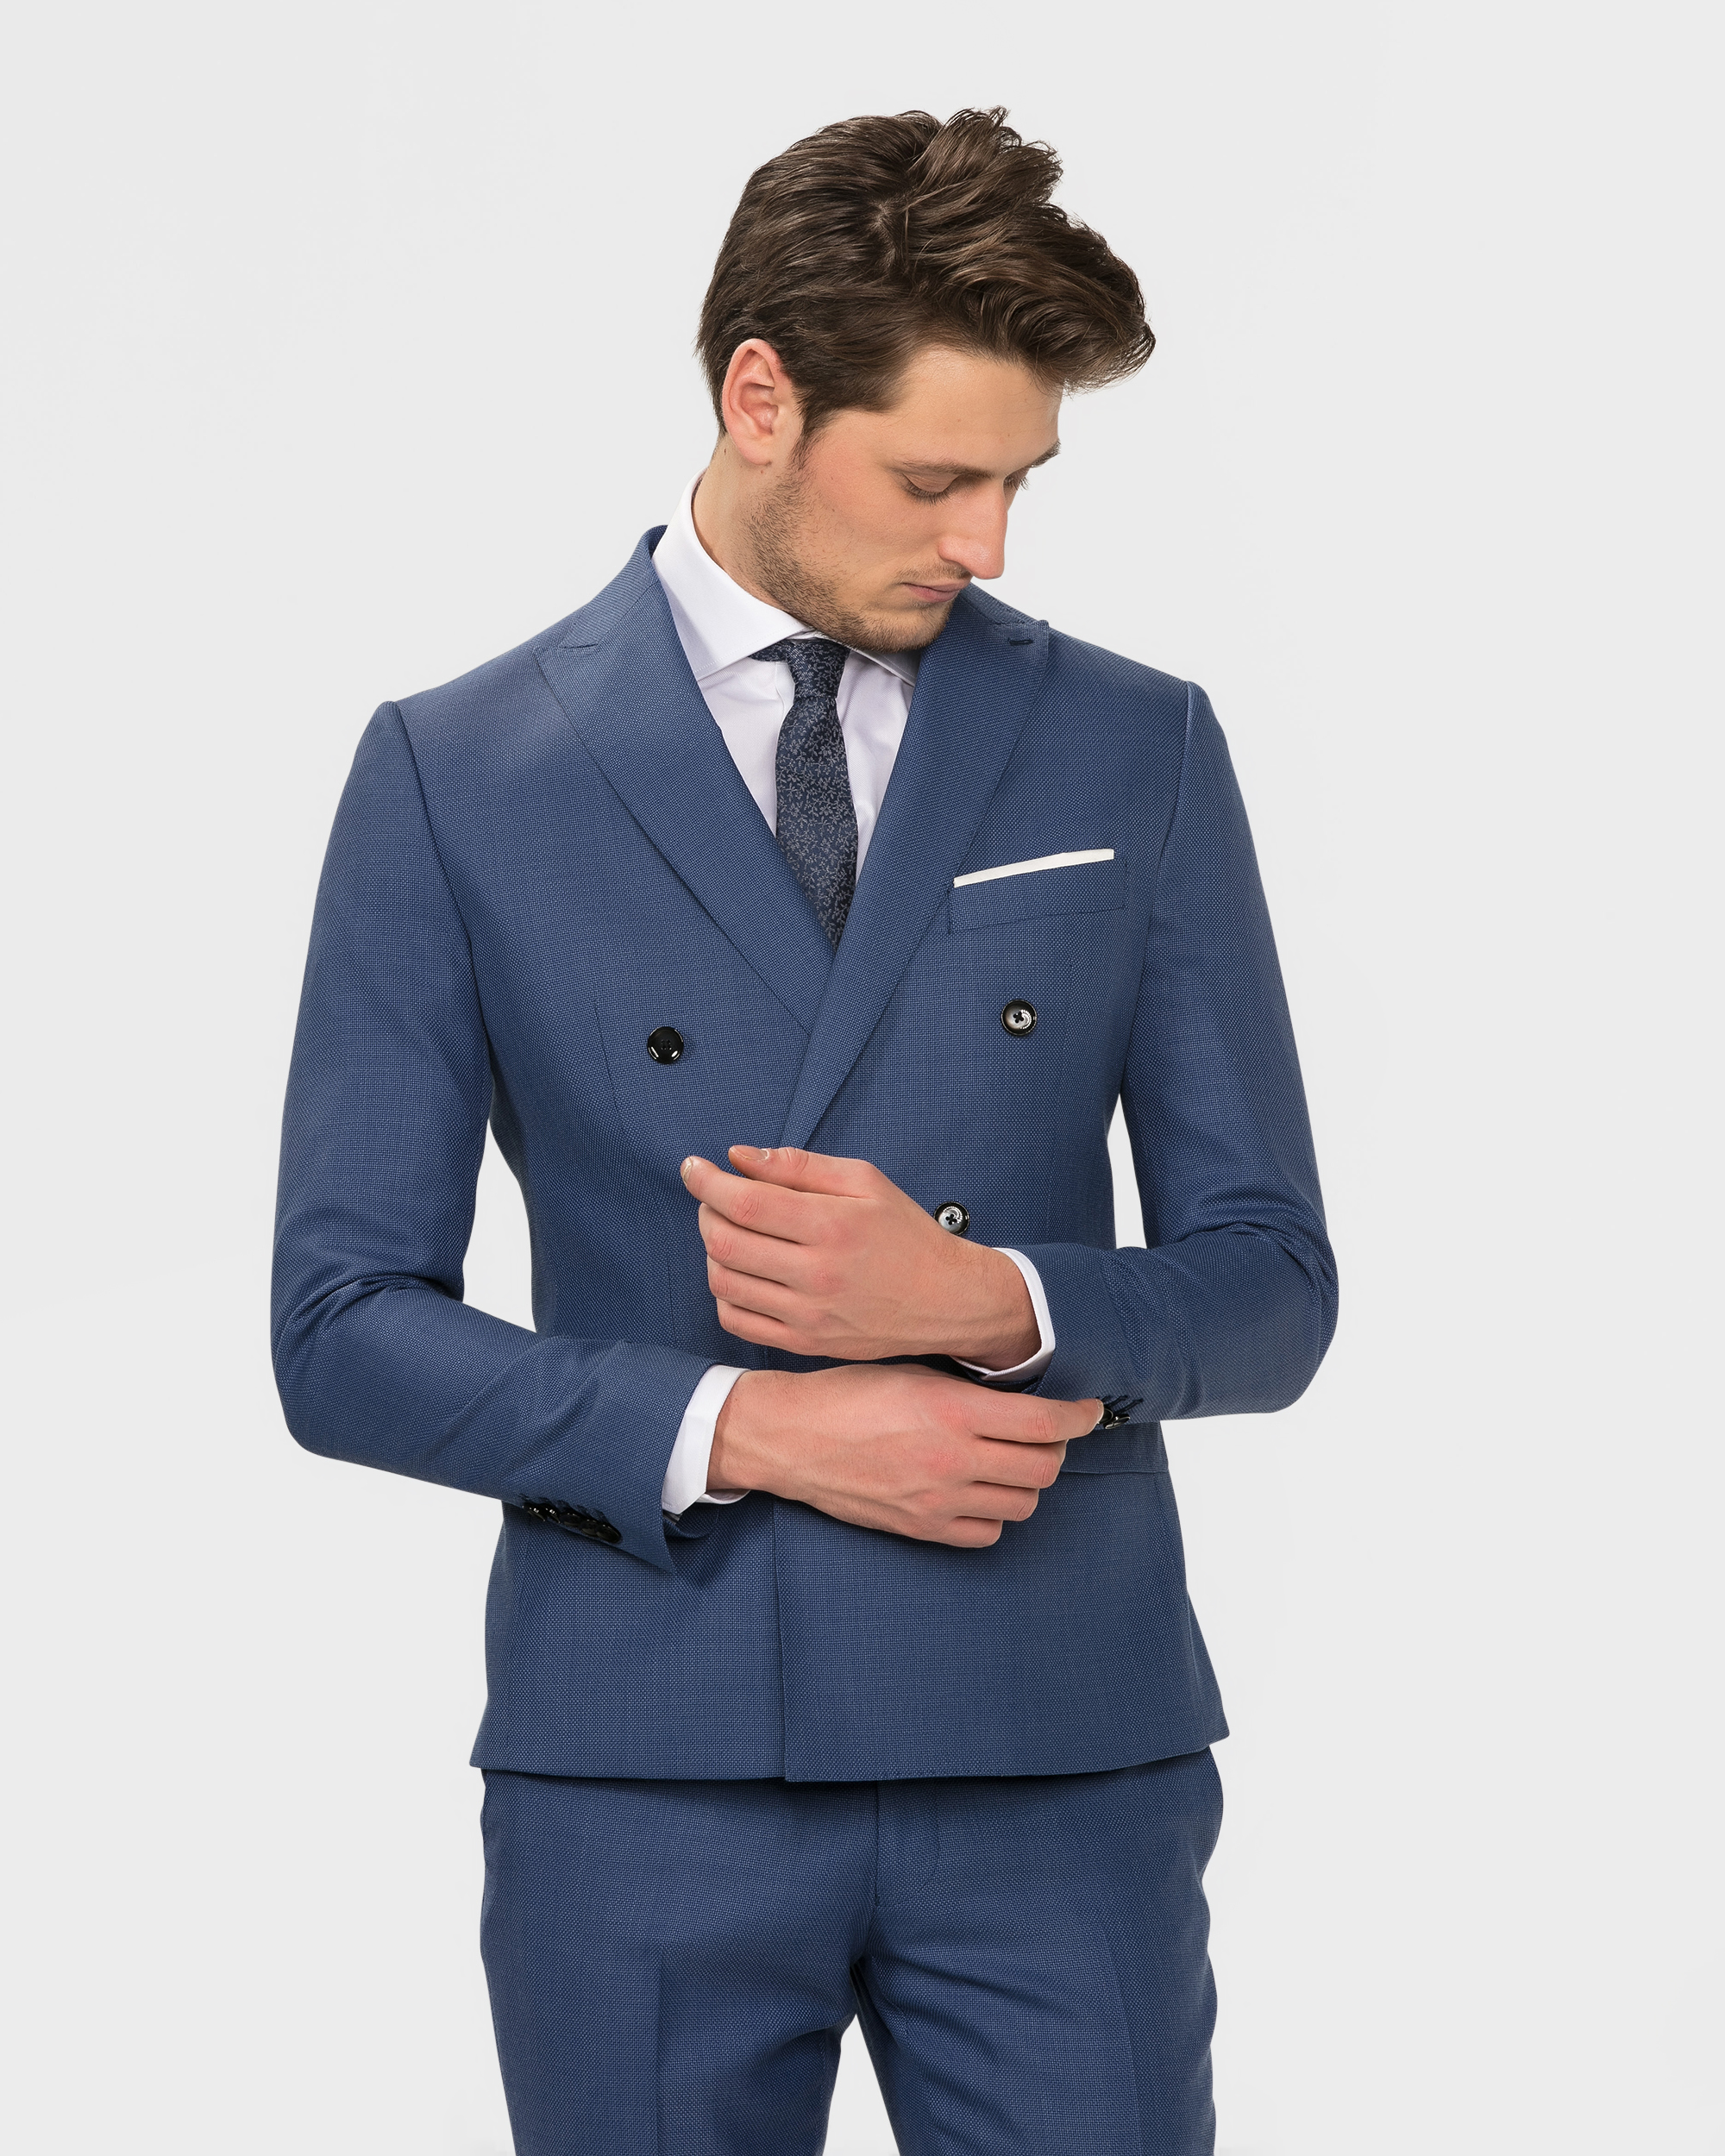 finest selection 36e6d 75249 HERREN-ULTRA-SLIM-FIT-ANZUG FABIANO | 79563857_set_suit - WE ...